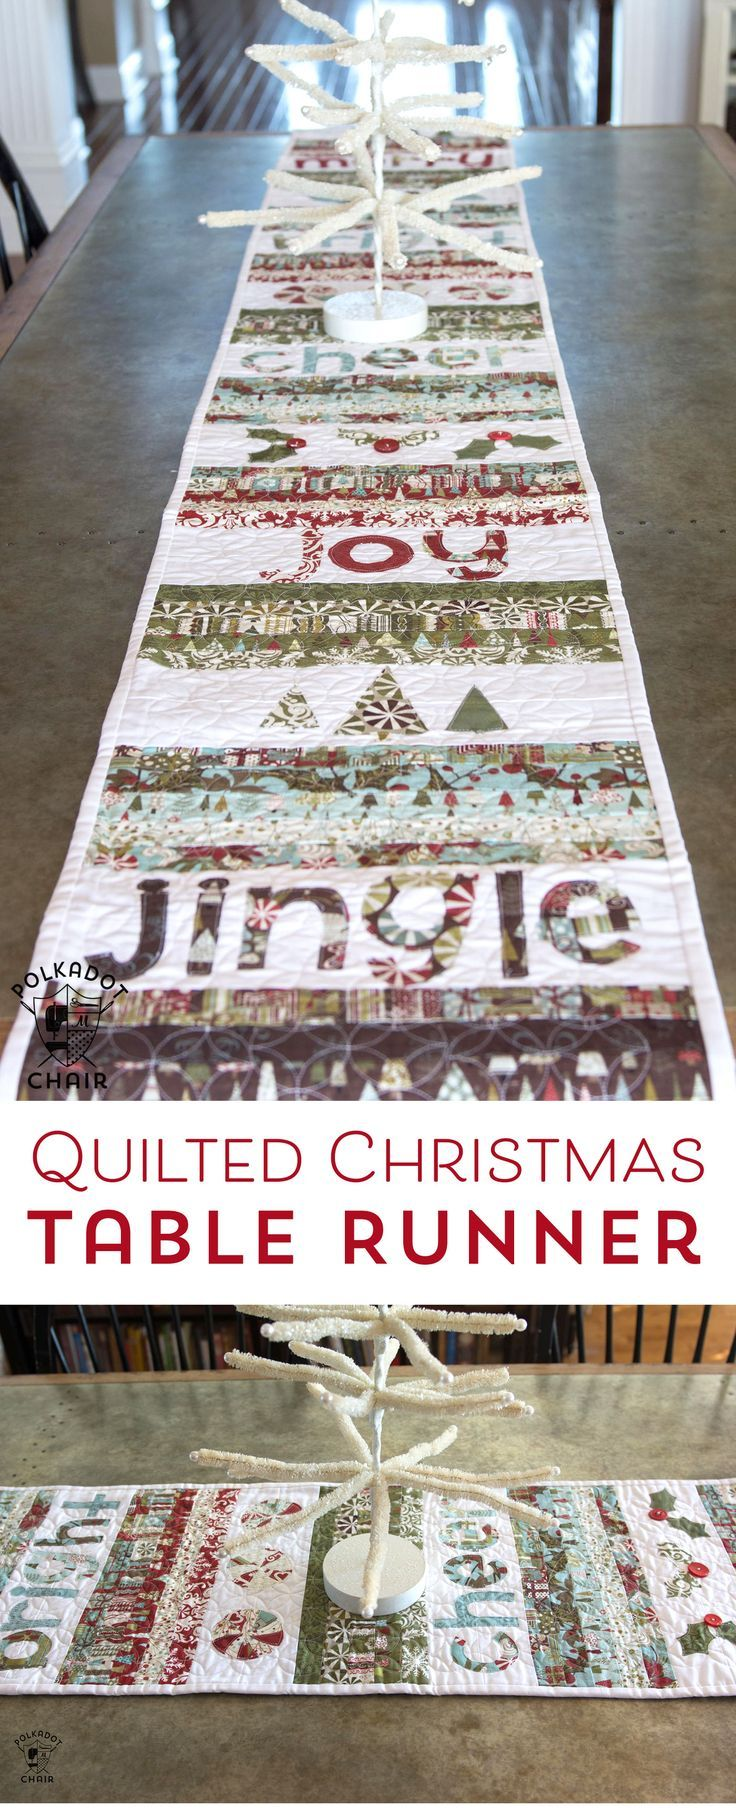 Merry & Cheer Quilted Christmas Table Runner Pattern | Pinterest ...